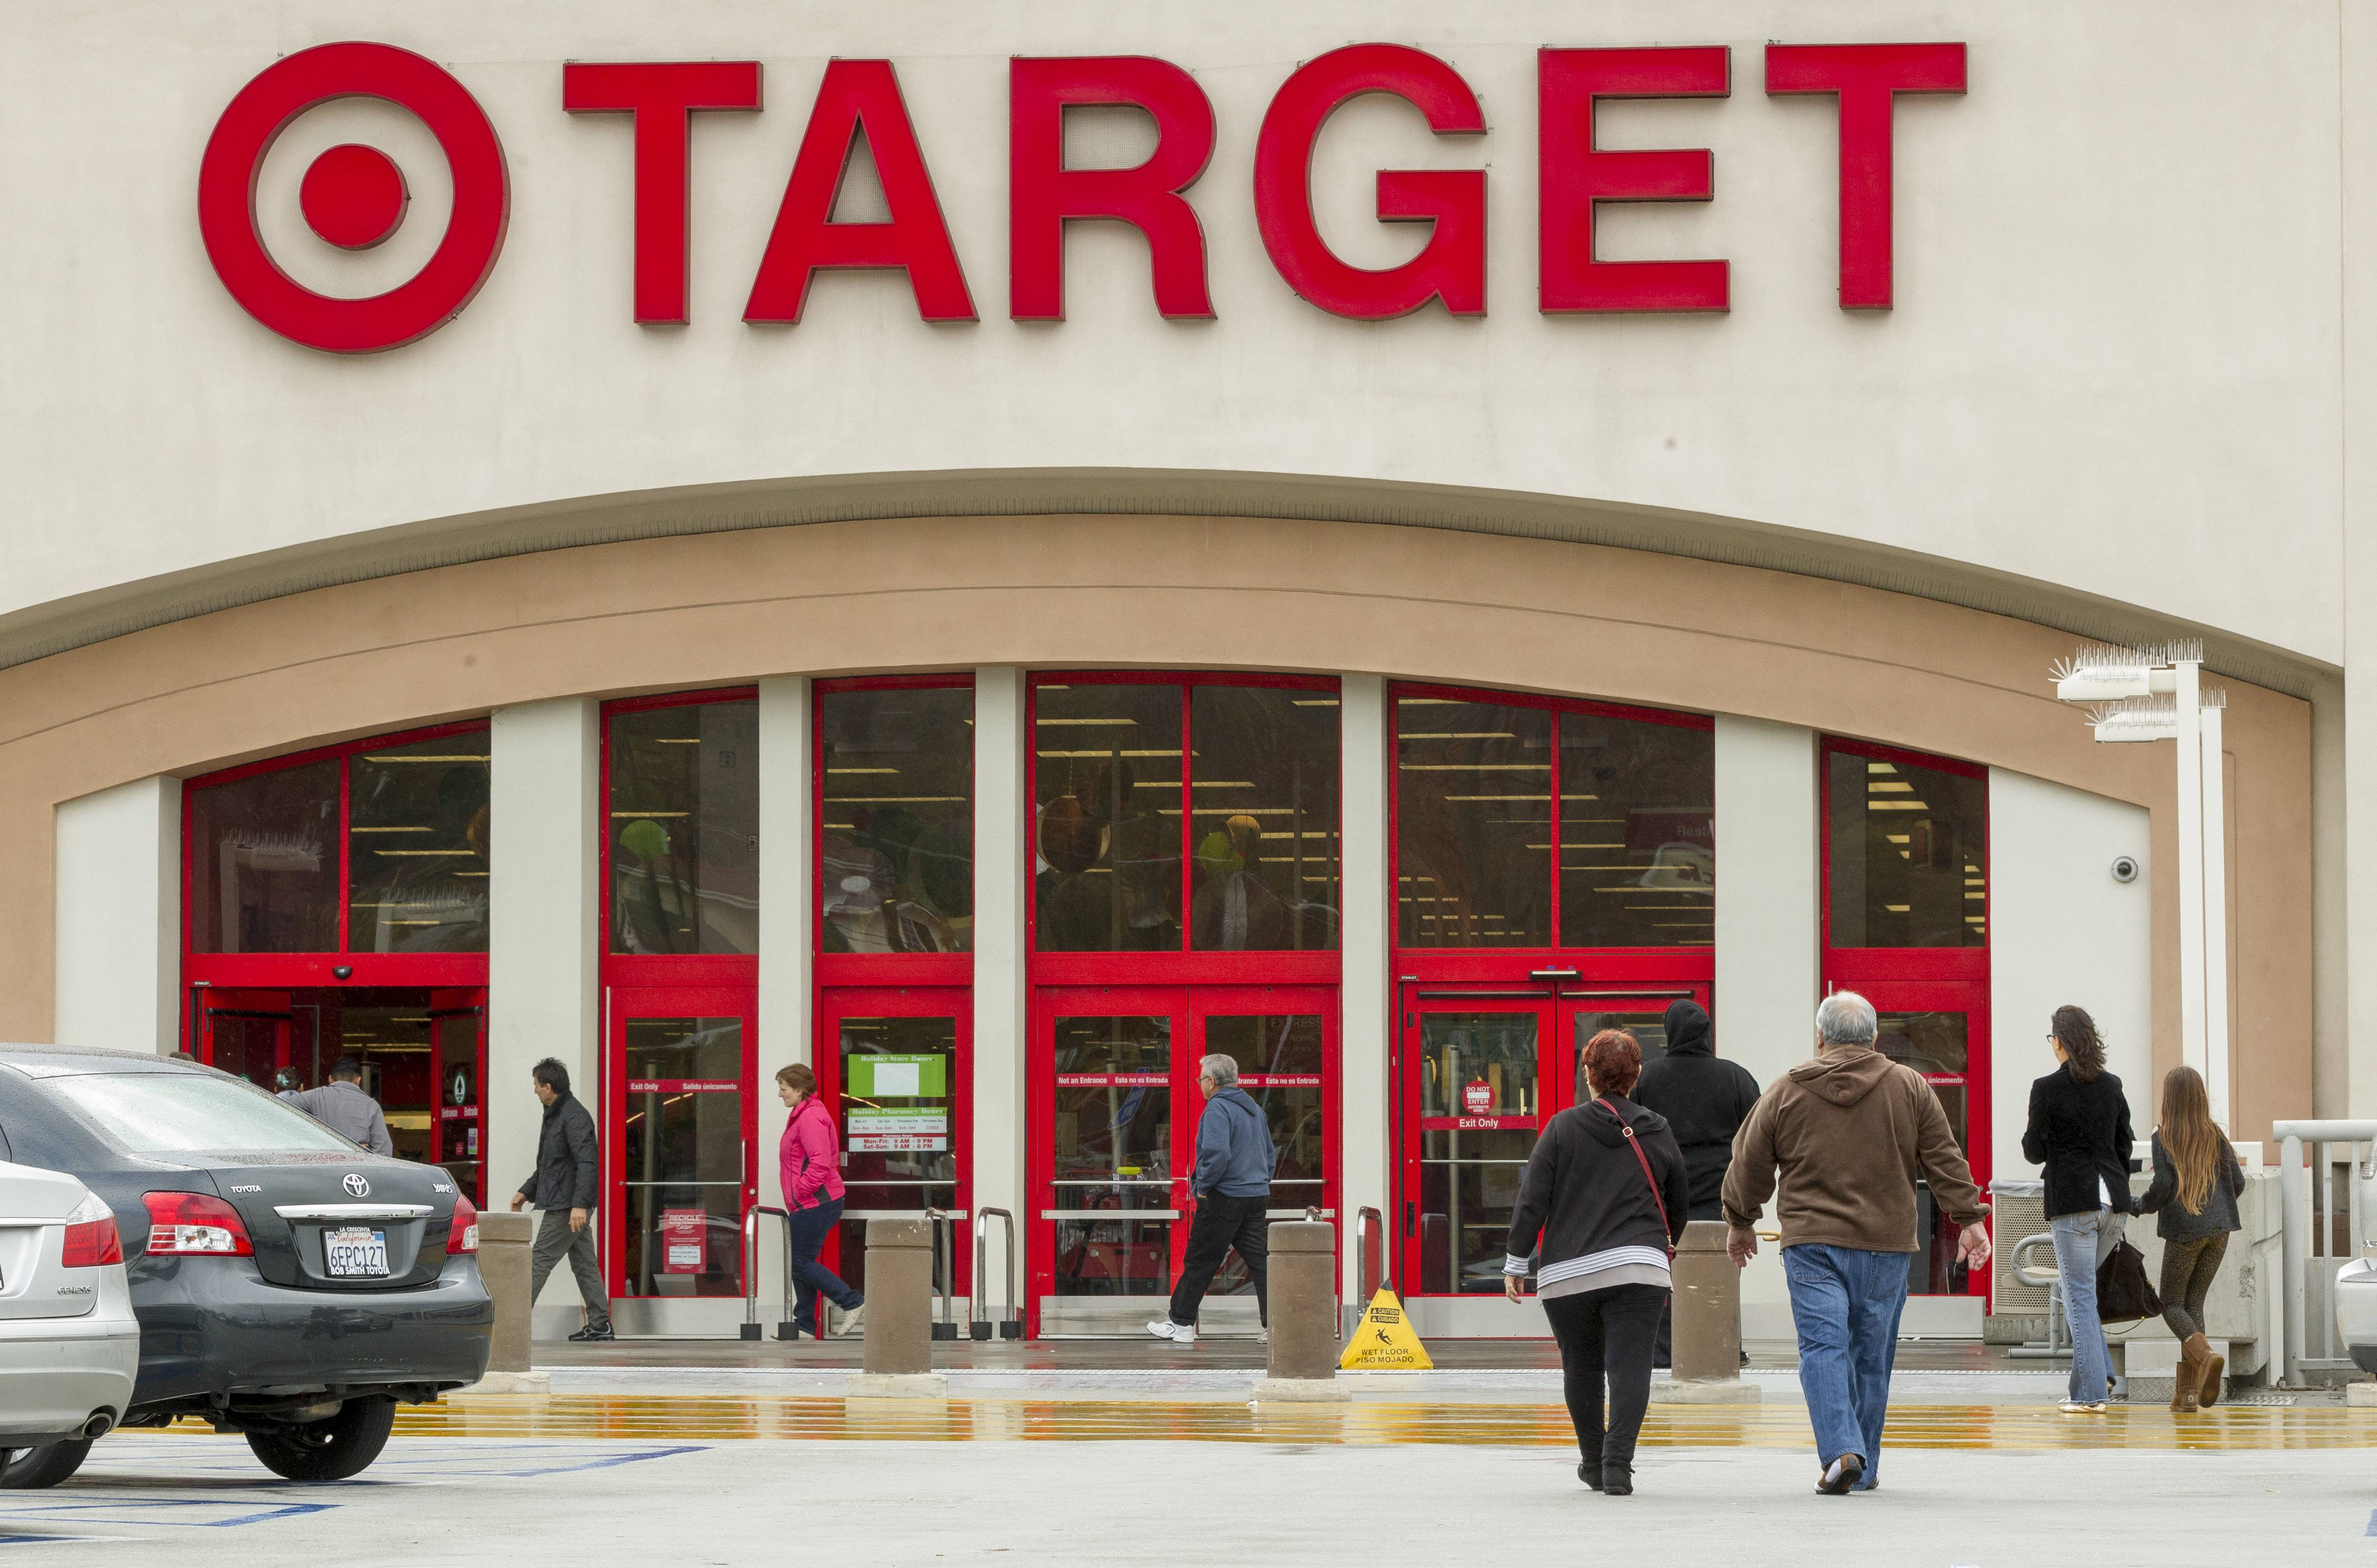 Target Corp. is adding its name to a legal defense of gay marriage, joining other large companies that have taken a stand on same-sex unions.